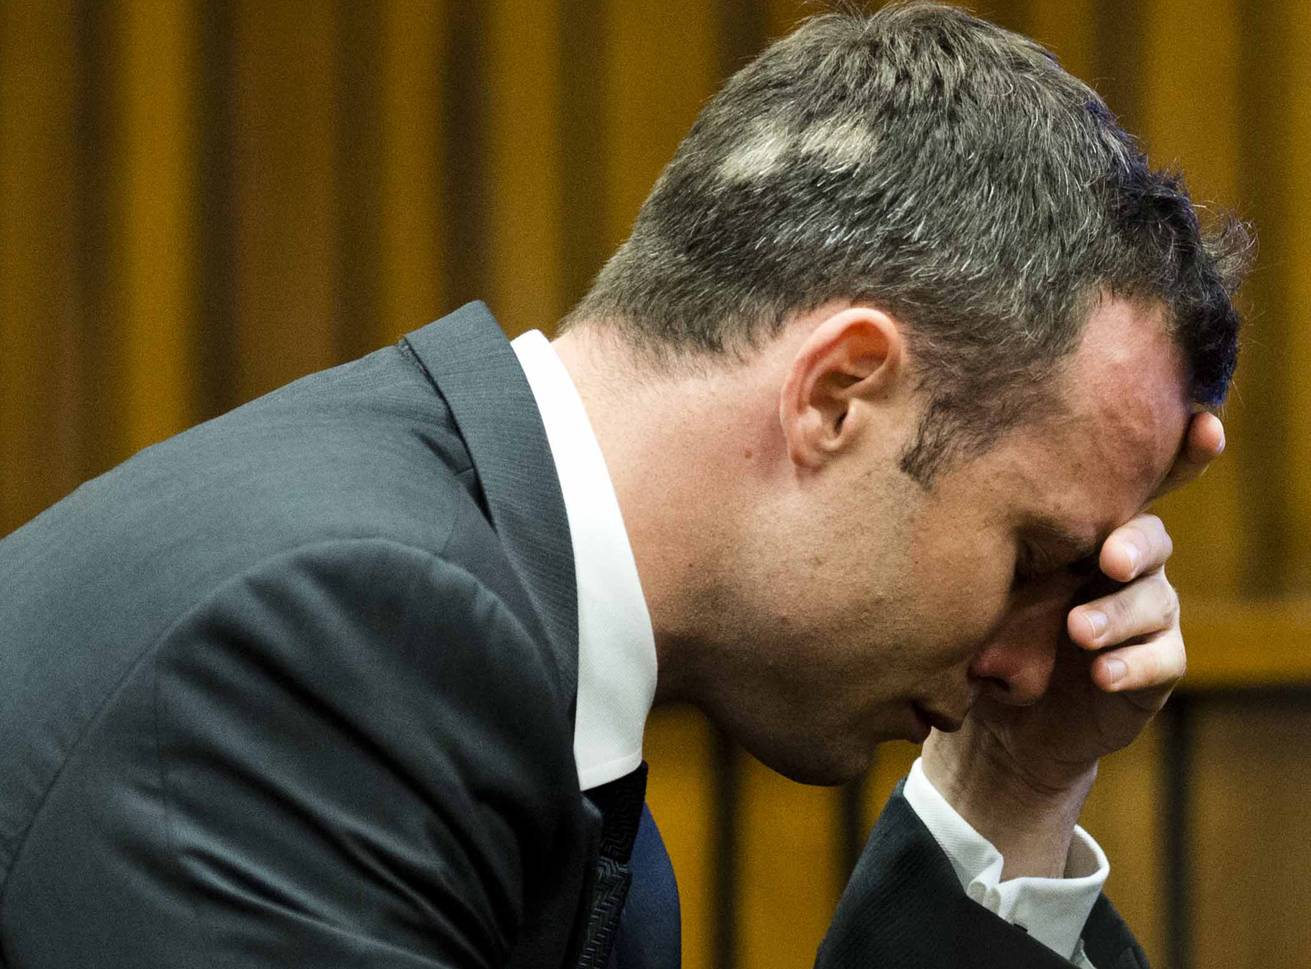 Oscar Pistorius, puts his hand to his face while listening to cross questioning about the events surrounding the shooting death of his girlfriend Reeva Steenkamp, during his trial in Pretoria, South Africa, Friday.